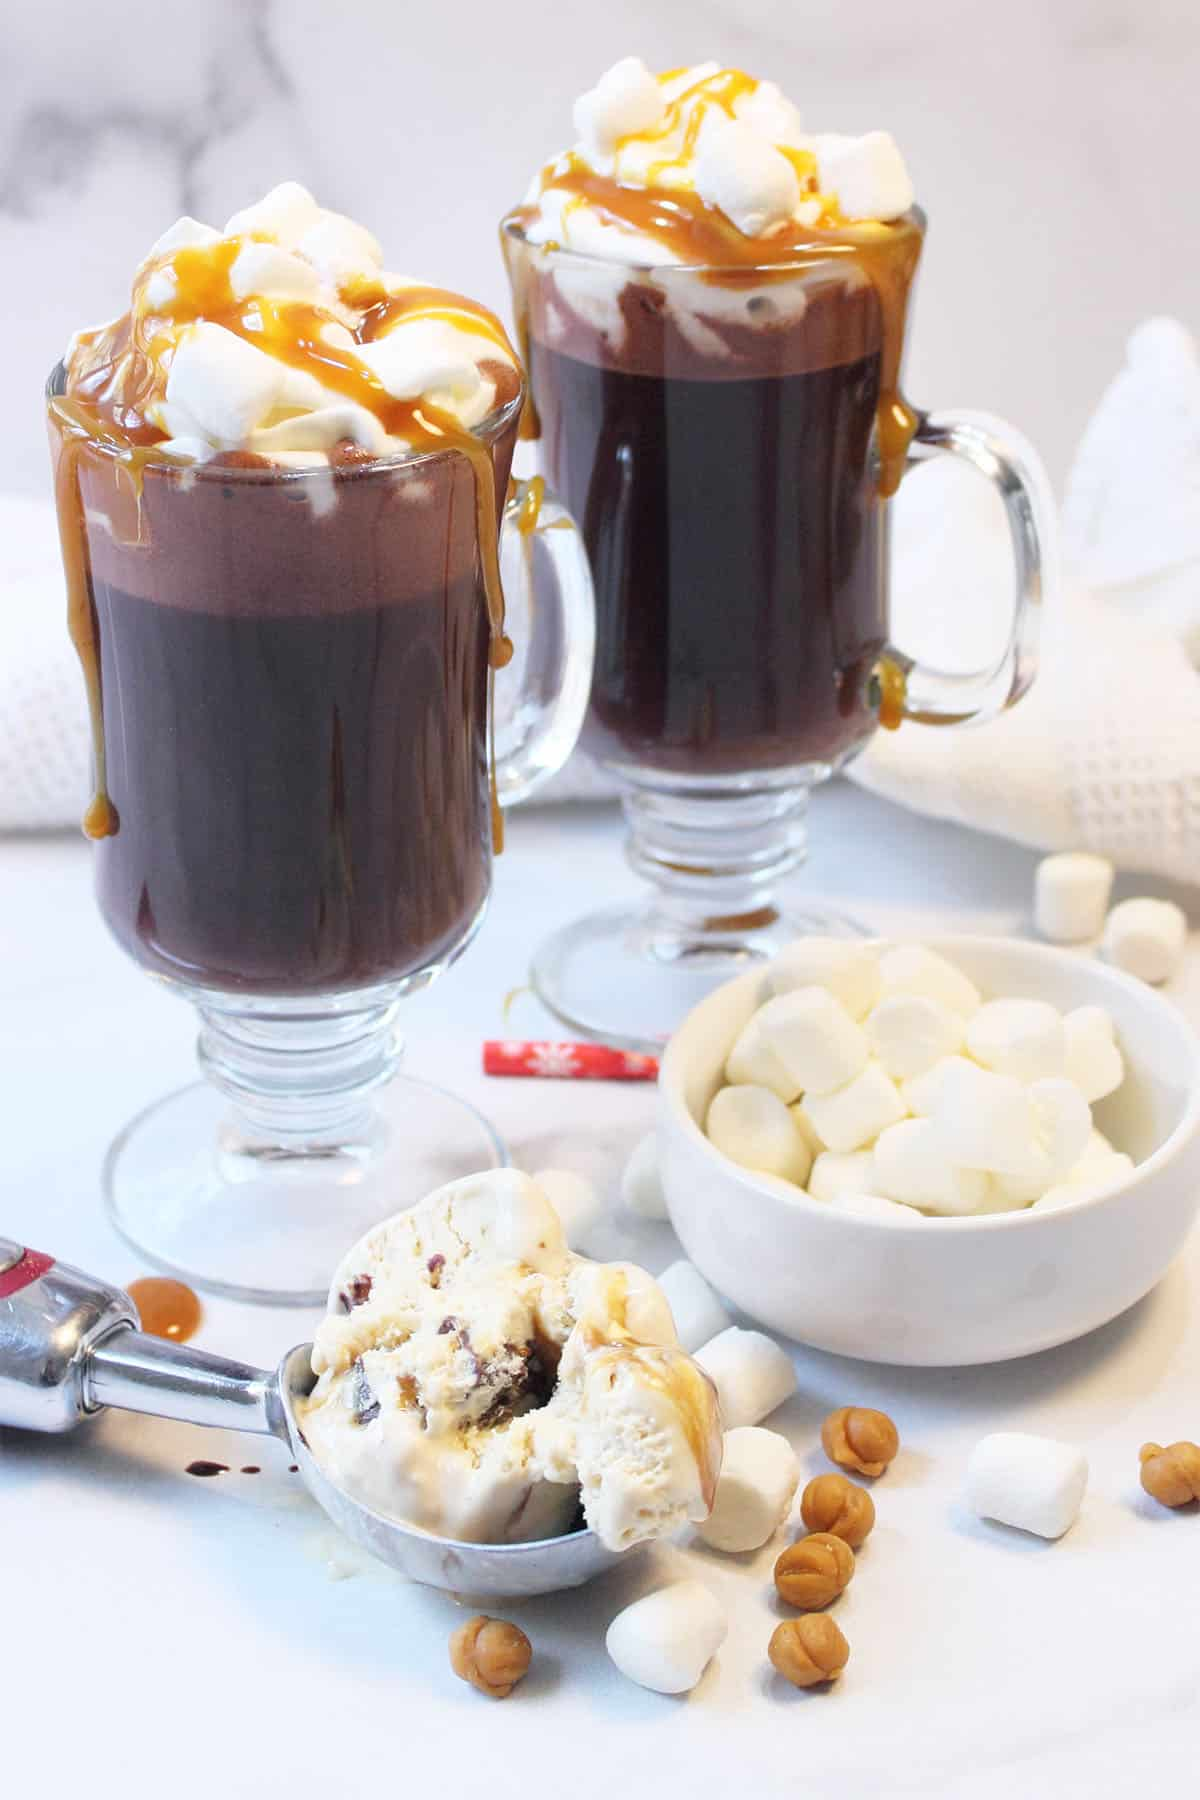 Two hot chocolates with whipped cream and caramel sauce with scoop of ice cream and marshmallows on the table.